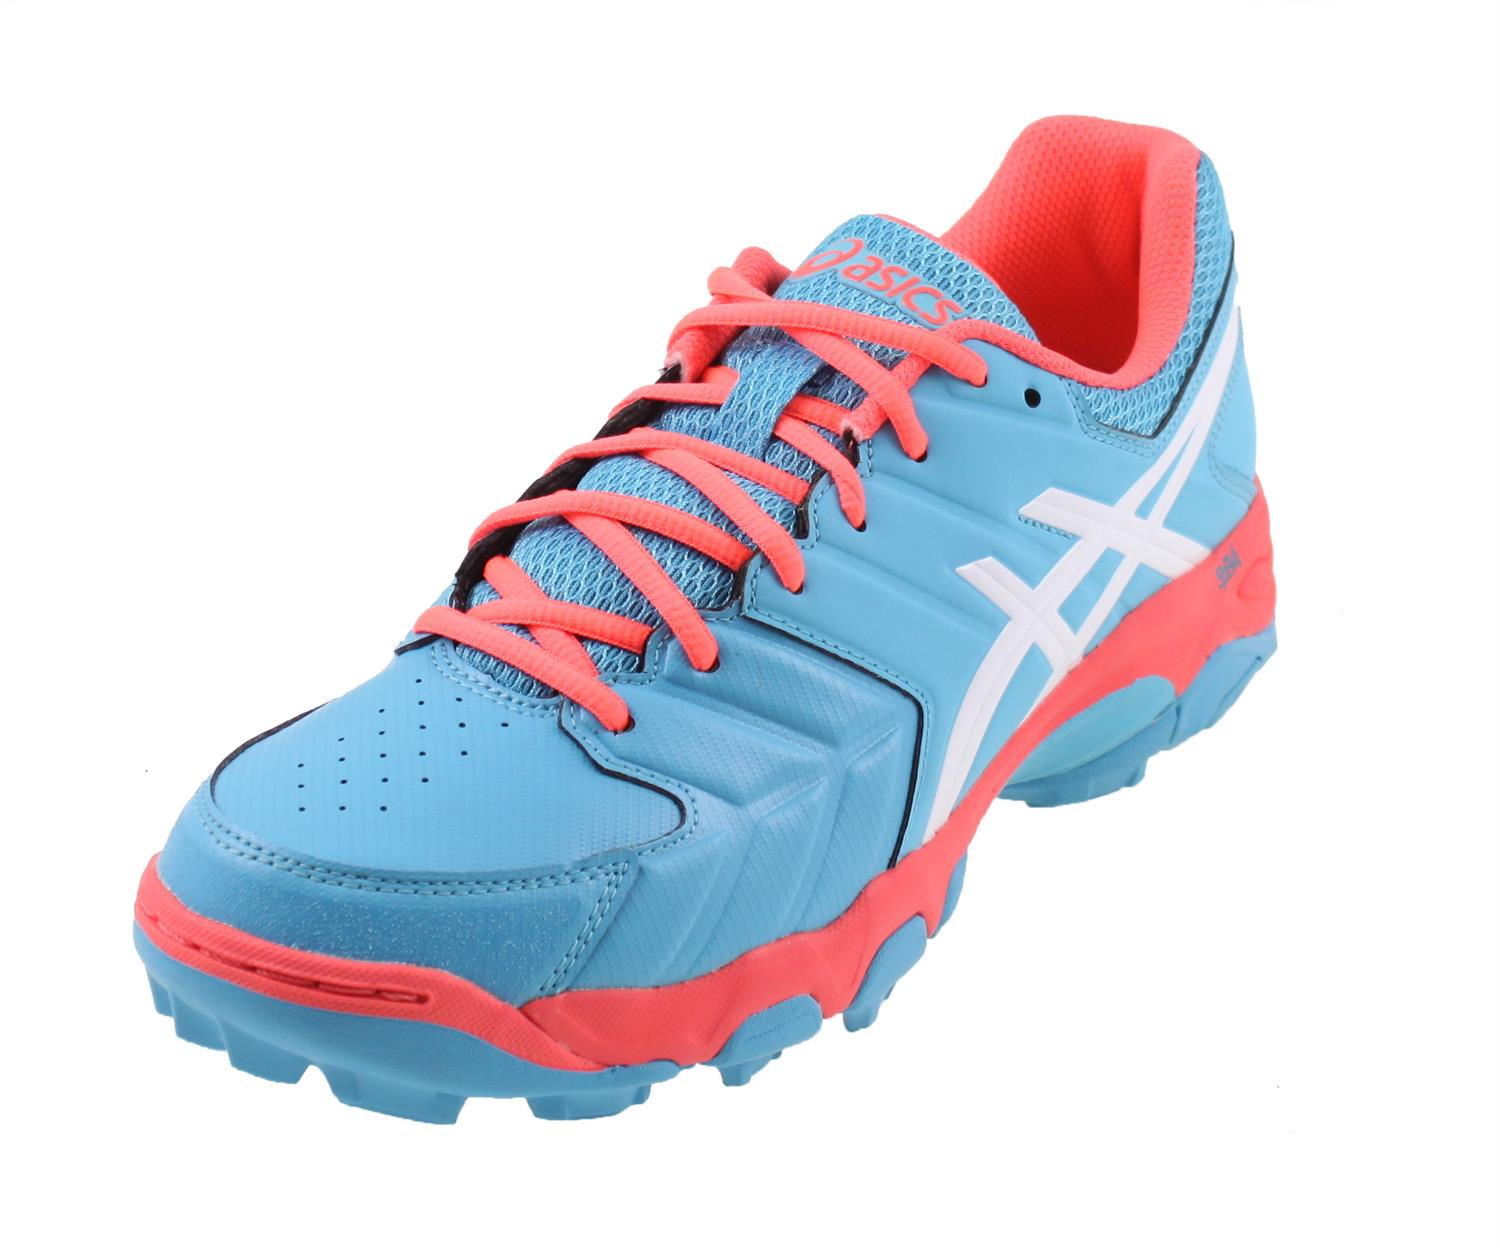 asics blackheath 6 dames